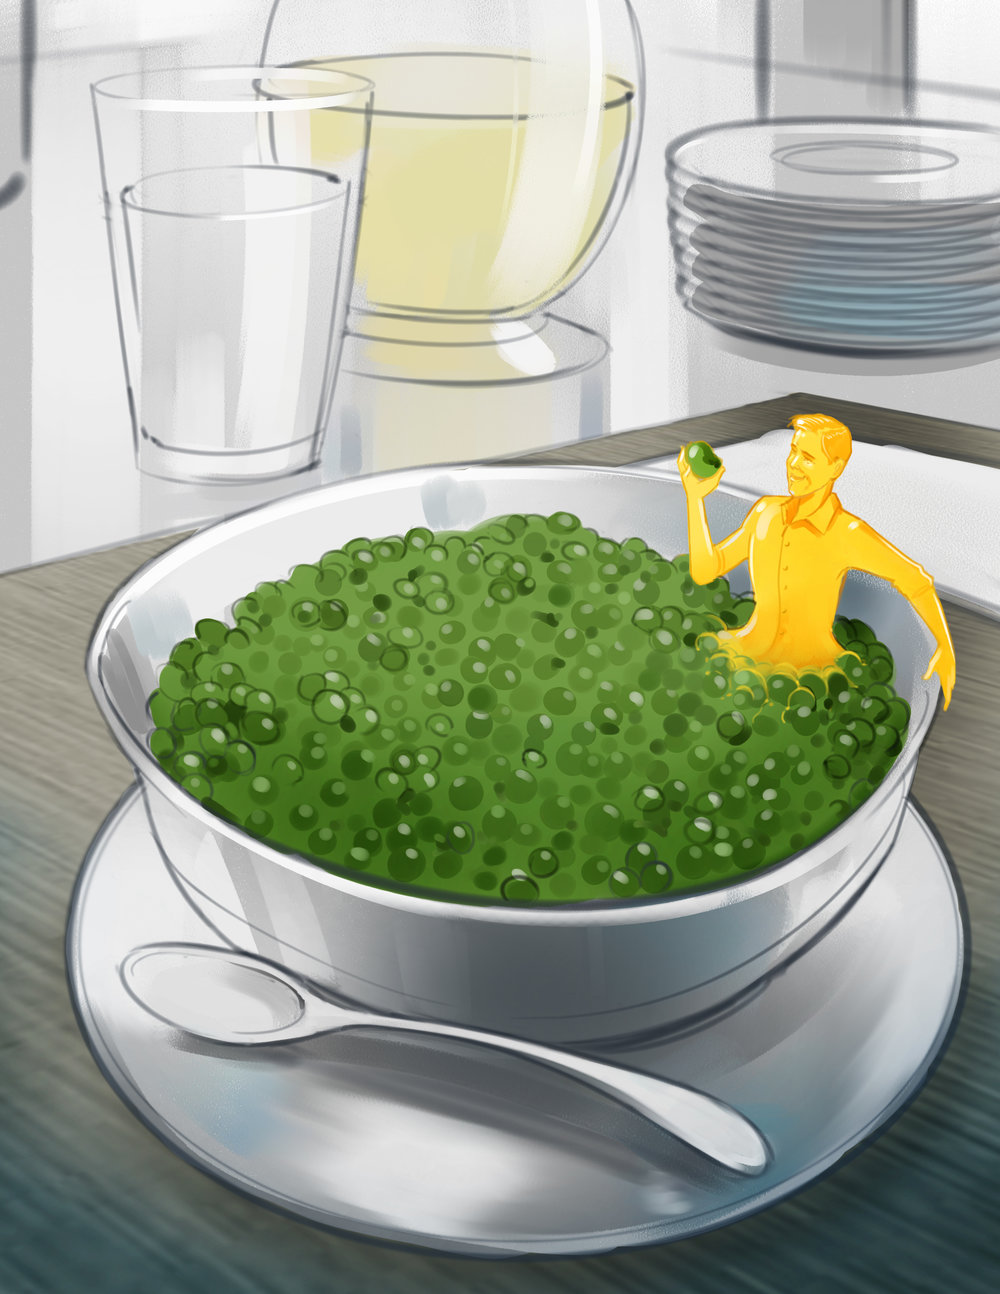 jacuzzi of peas revised.jpg